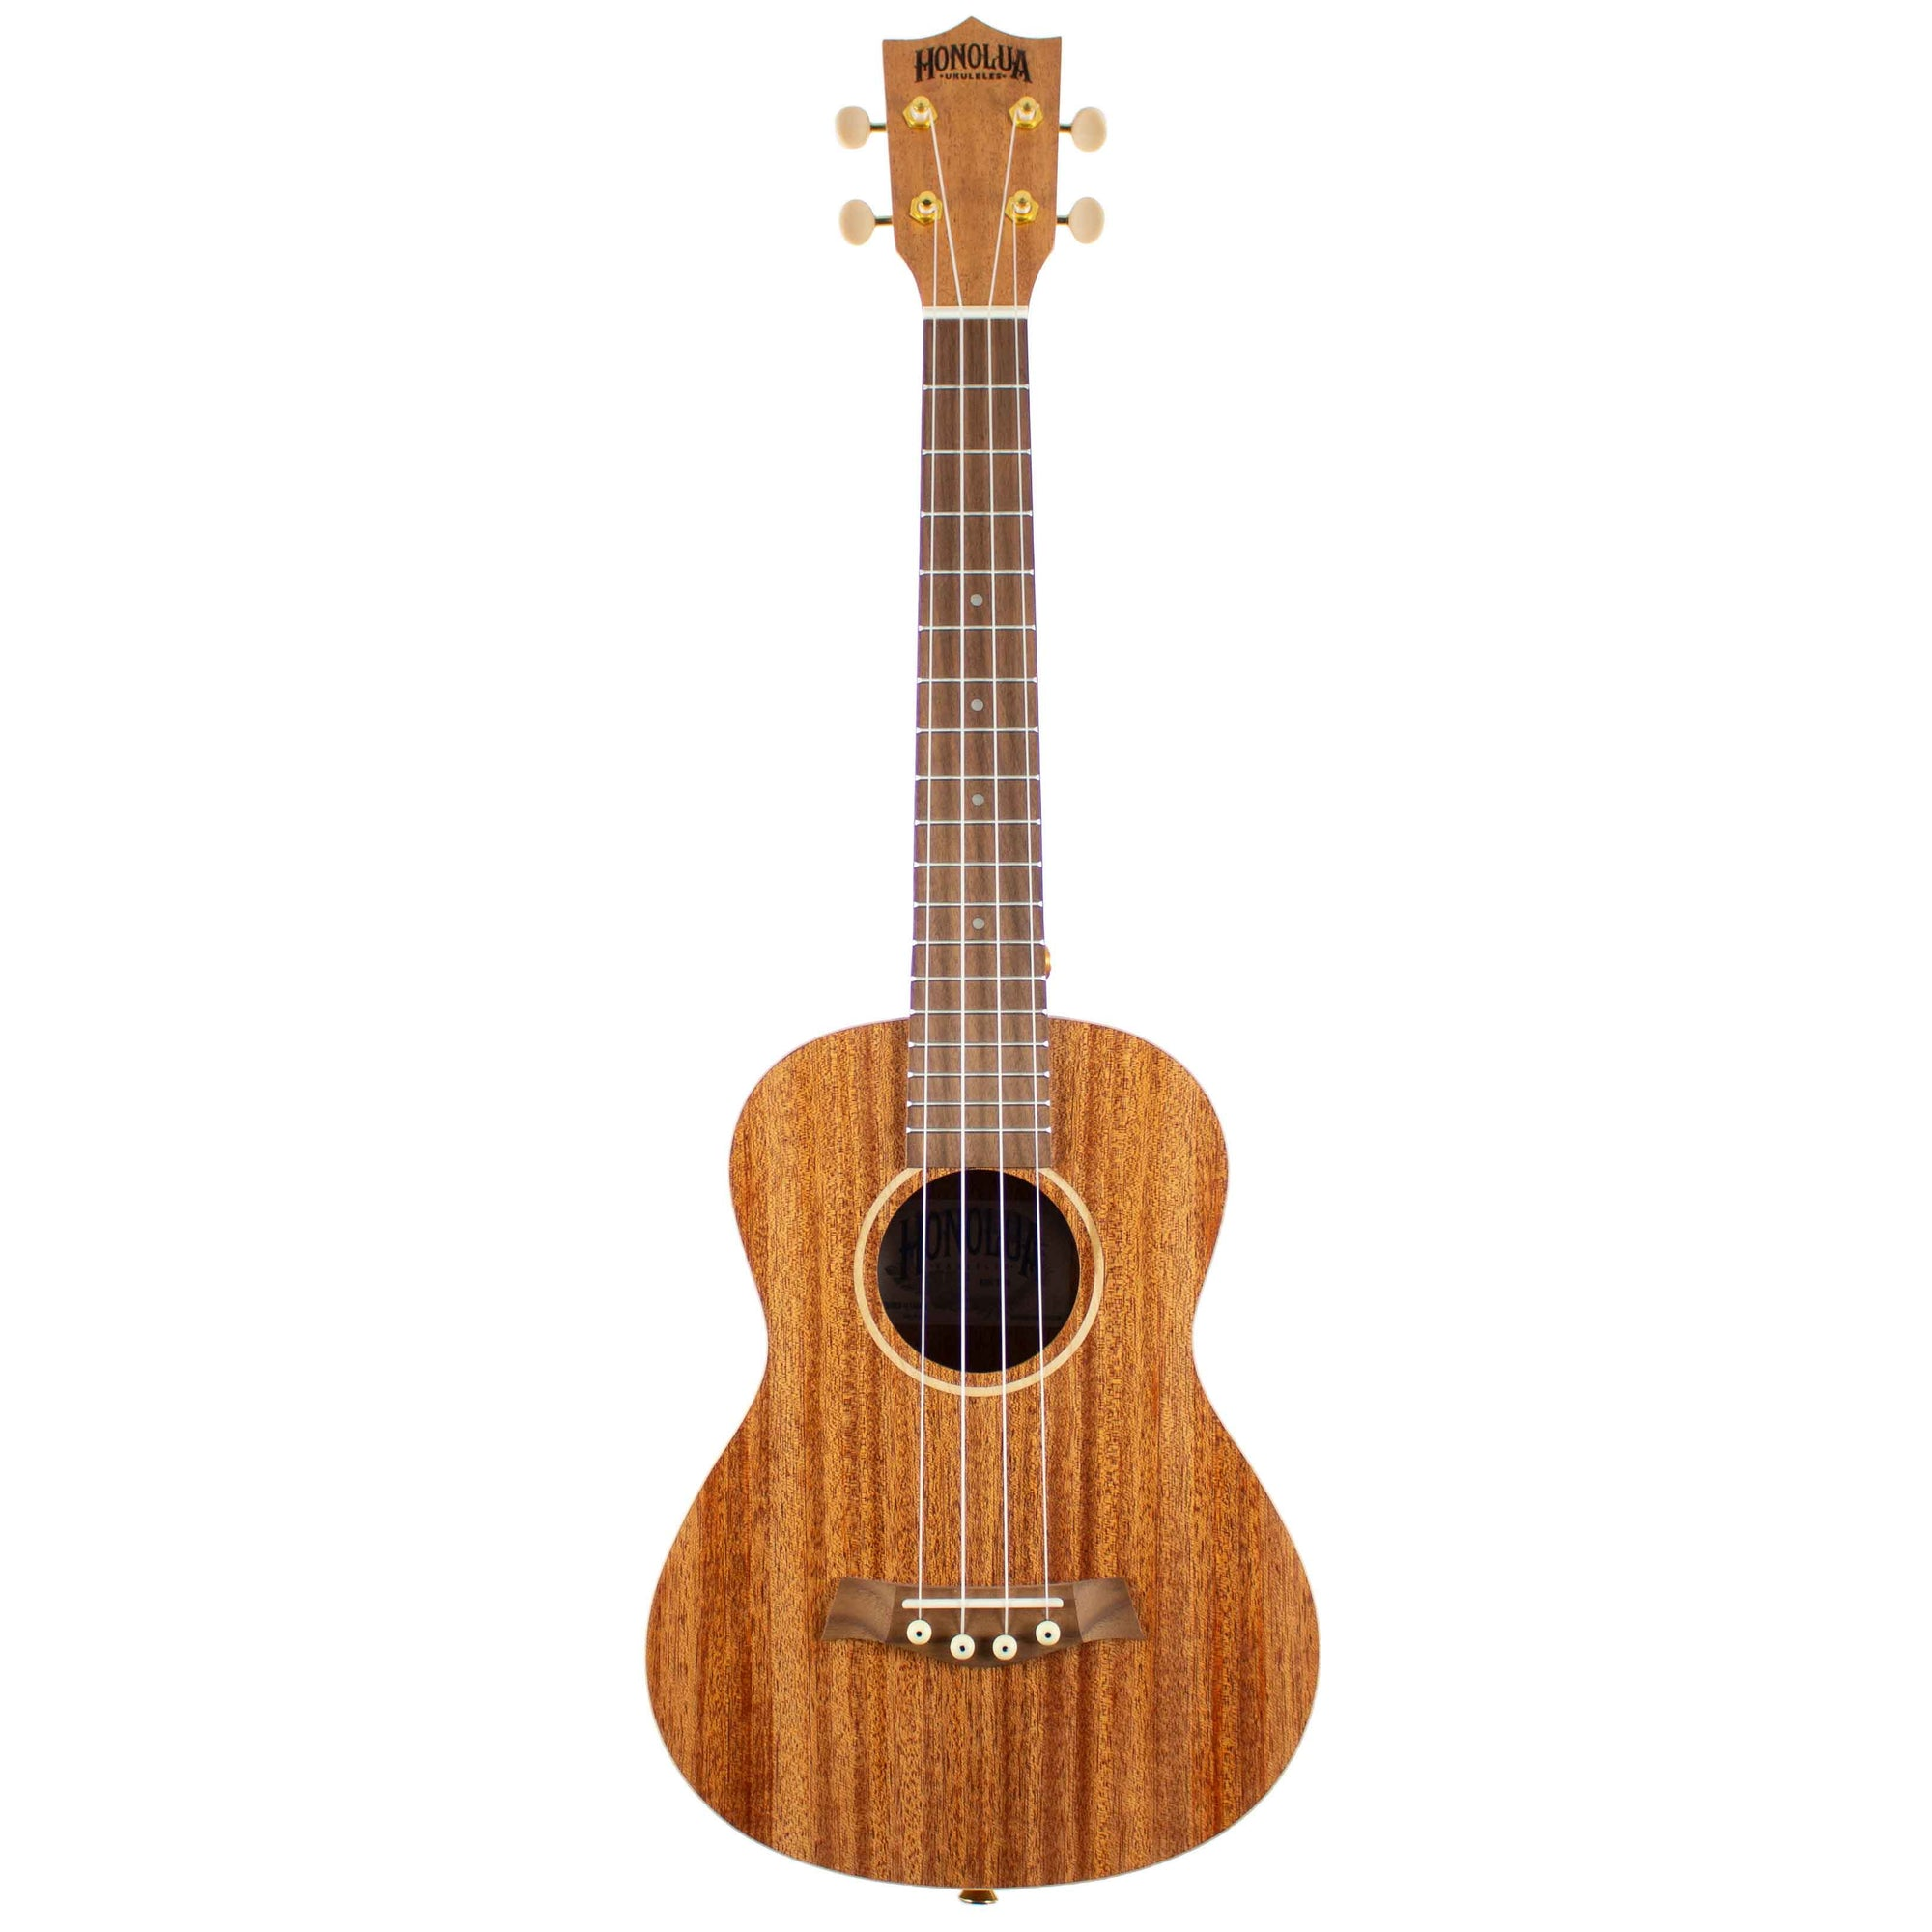 Honolua Ukuleles Mano Solid Top Tenor Ukulele MA-31 w/Bag